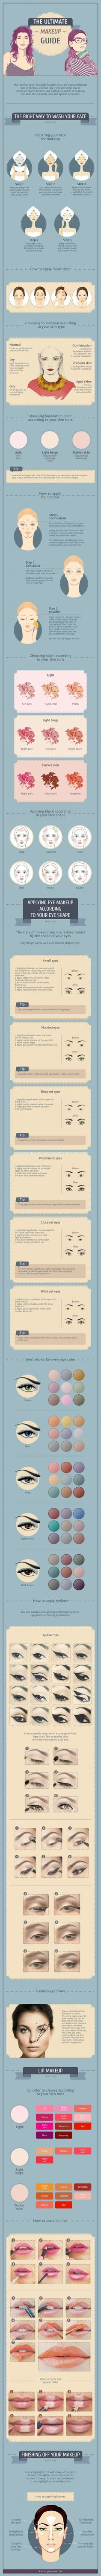 Step-by-step instructions tohelp you attain anabsolutely flawless look.